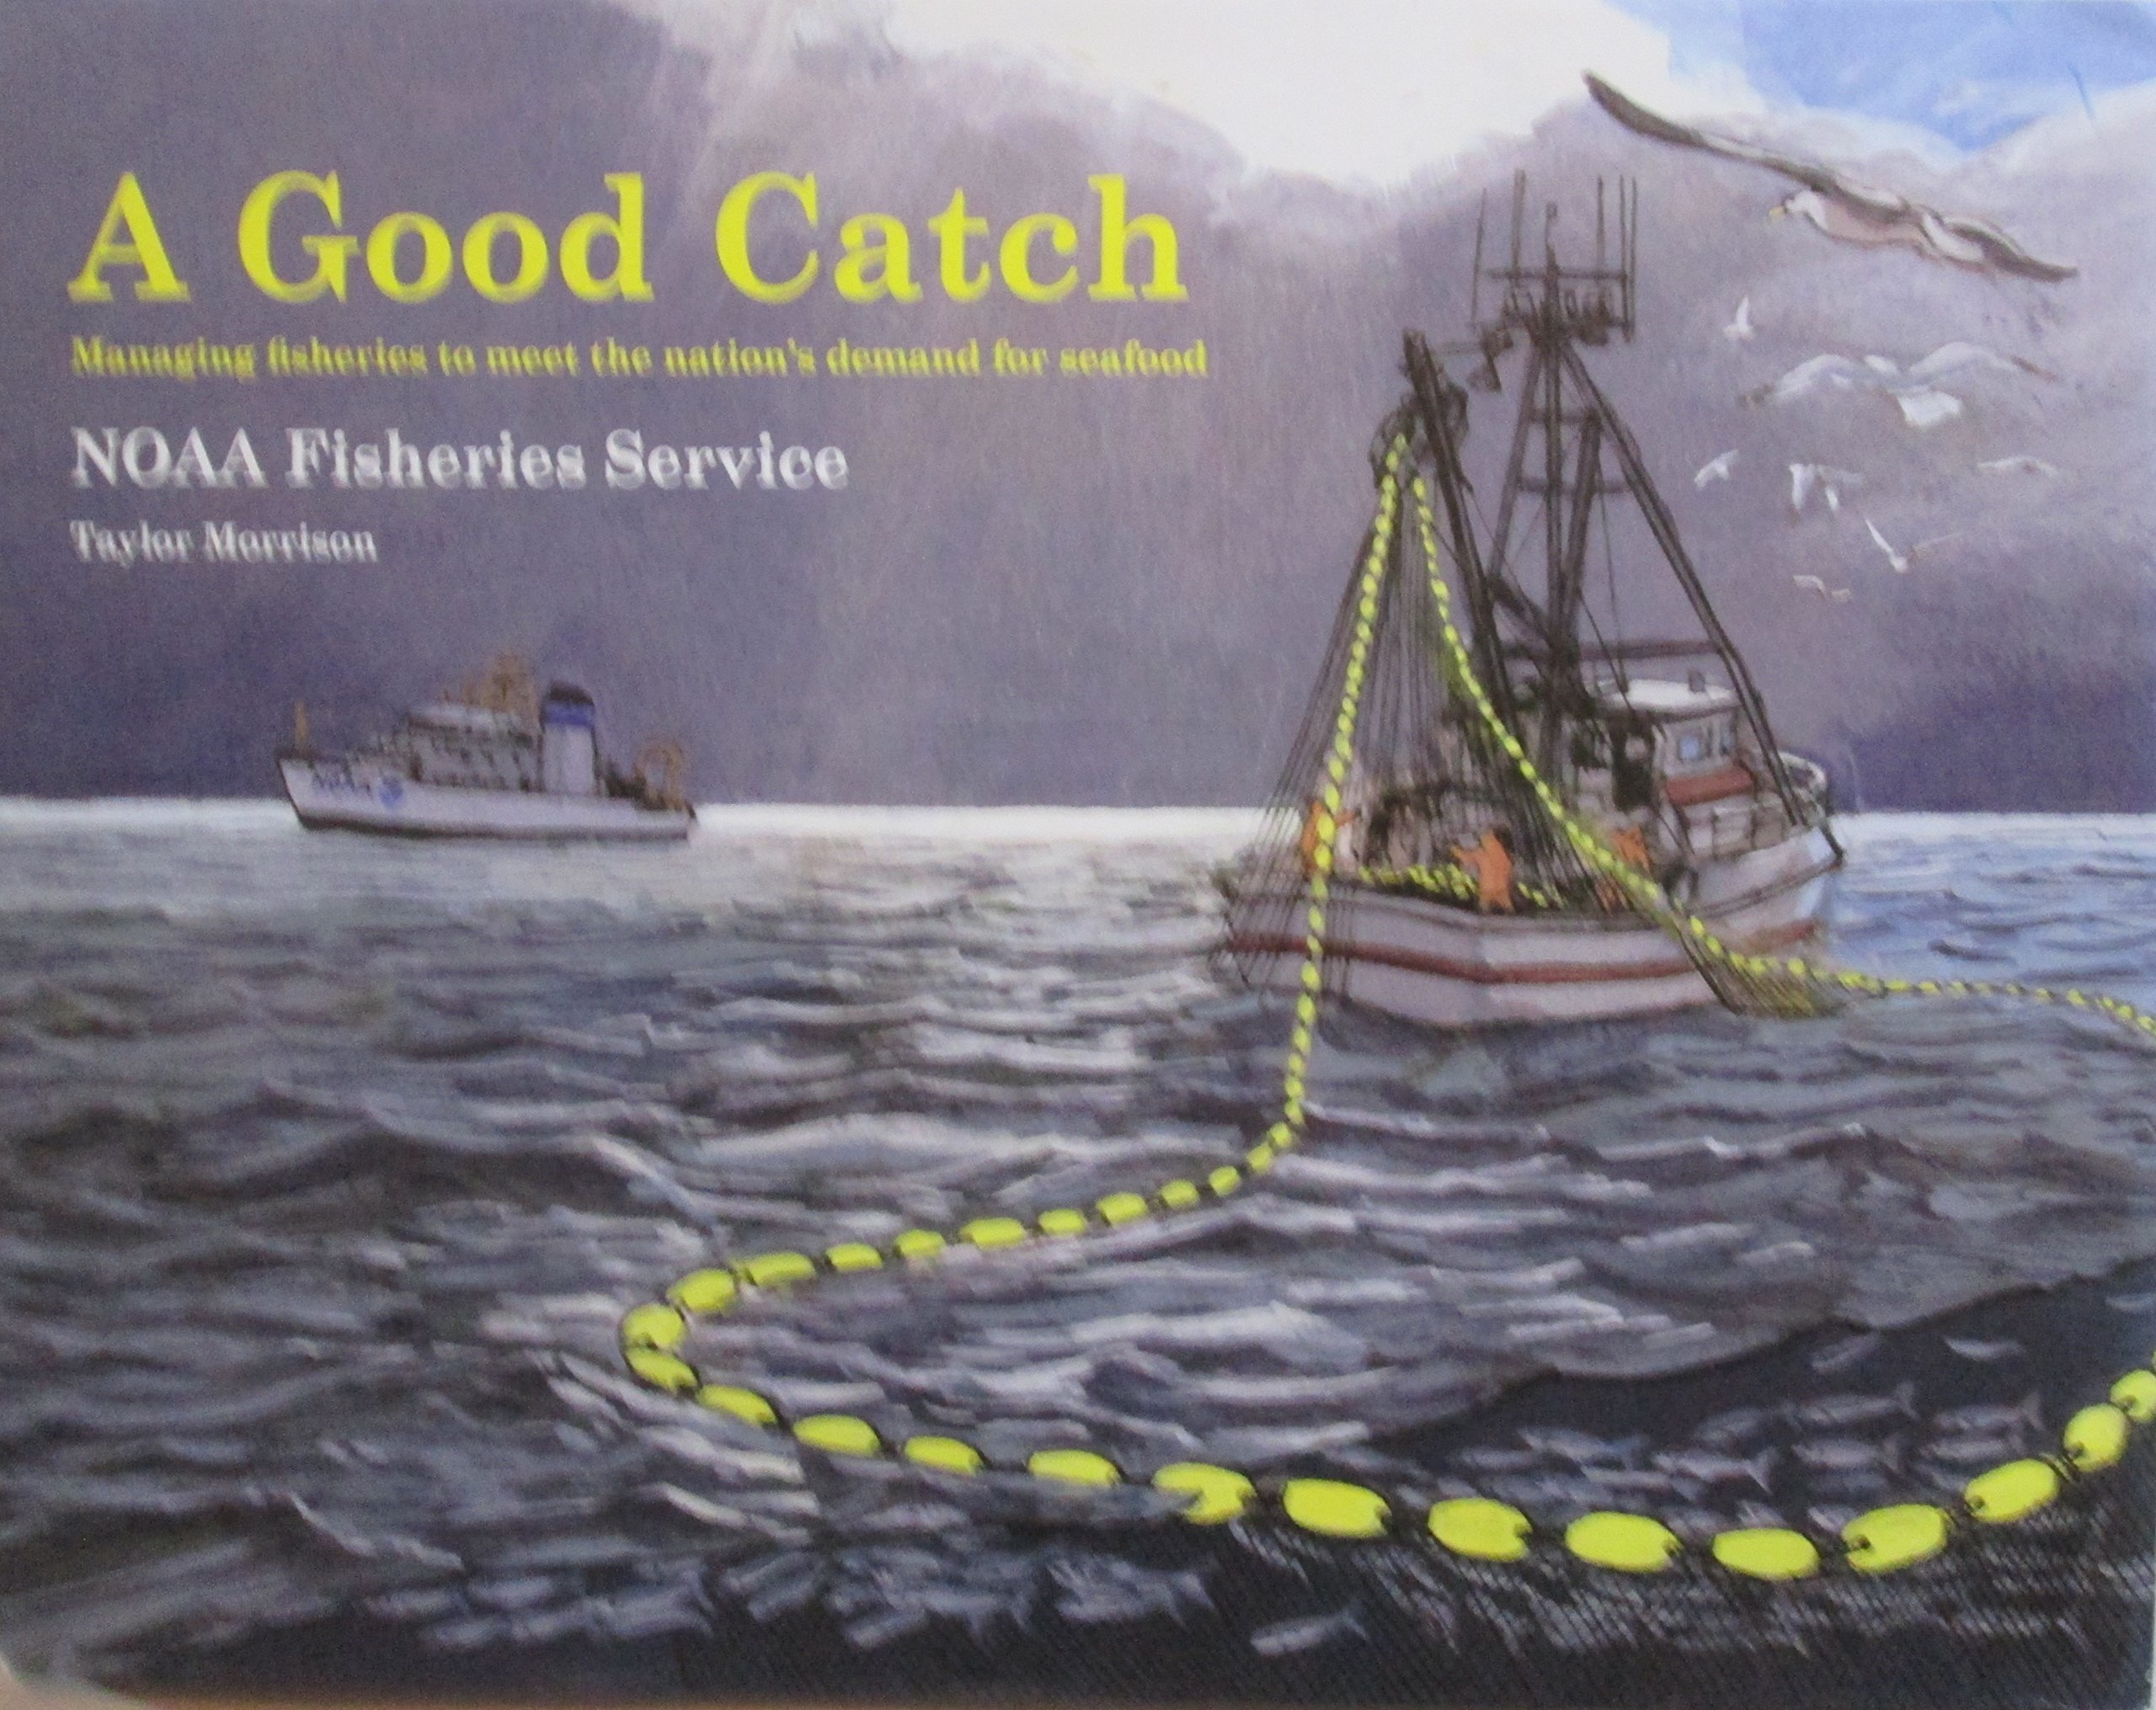 A Good Catch: Managing Fisheries to Meet the Nation's Demand for Seafood